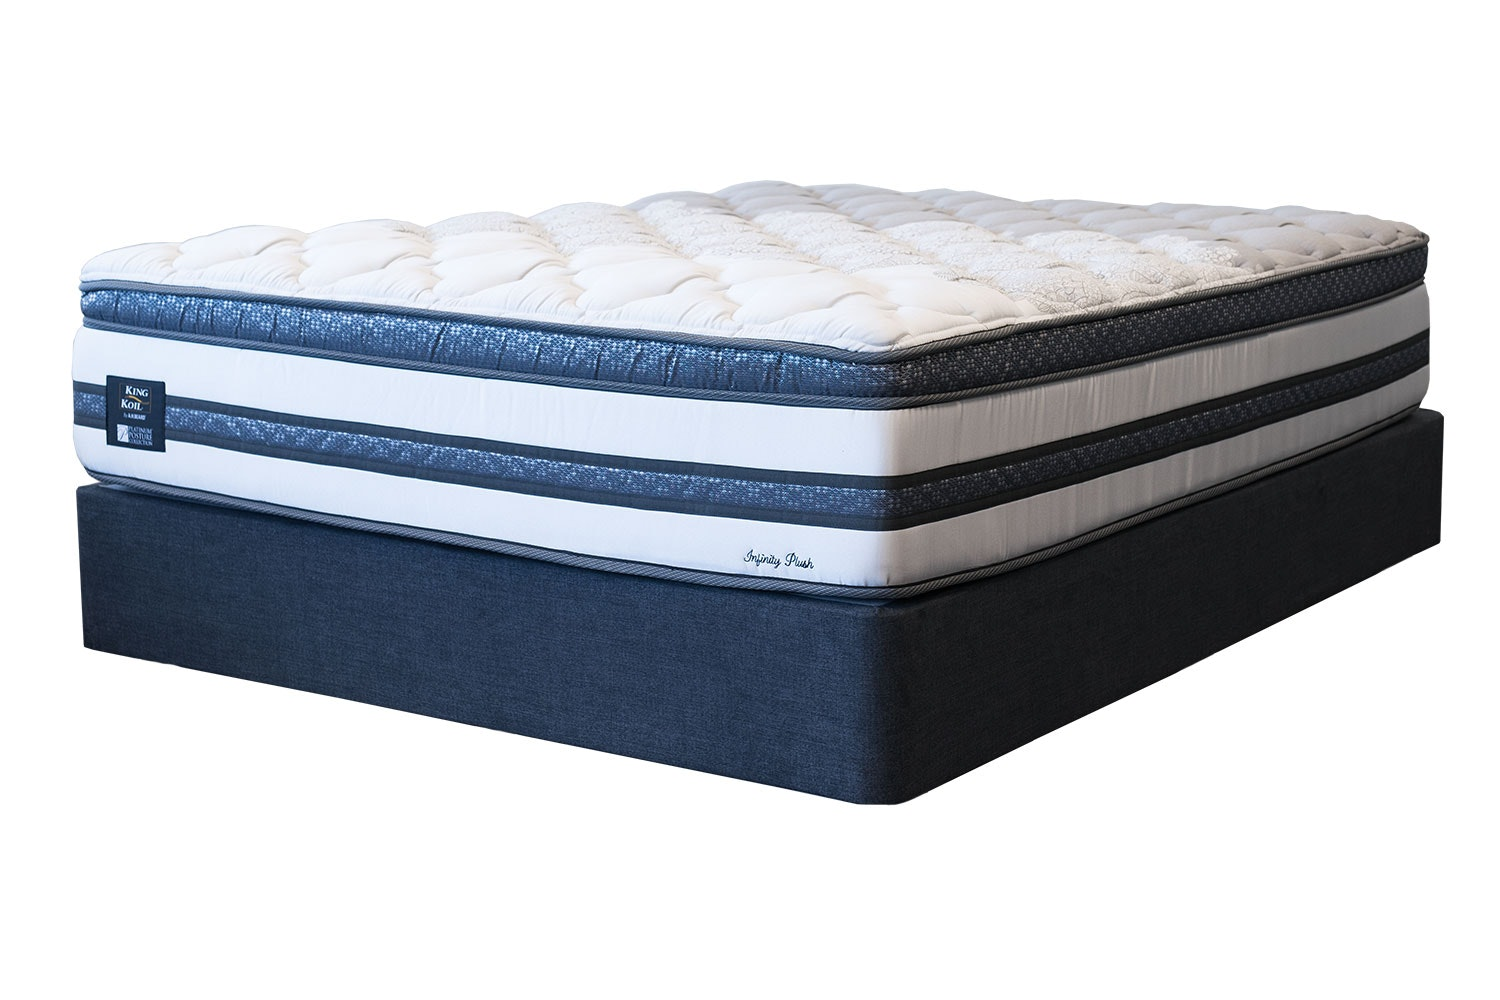 Infinity Plush Single Bed by King Koil